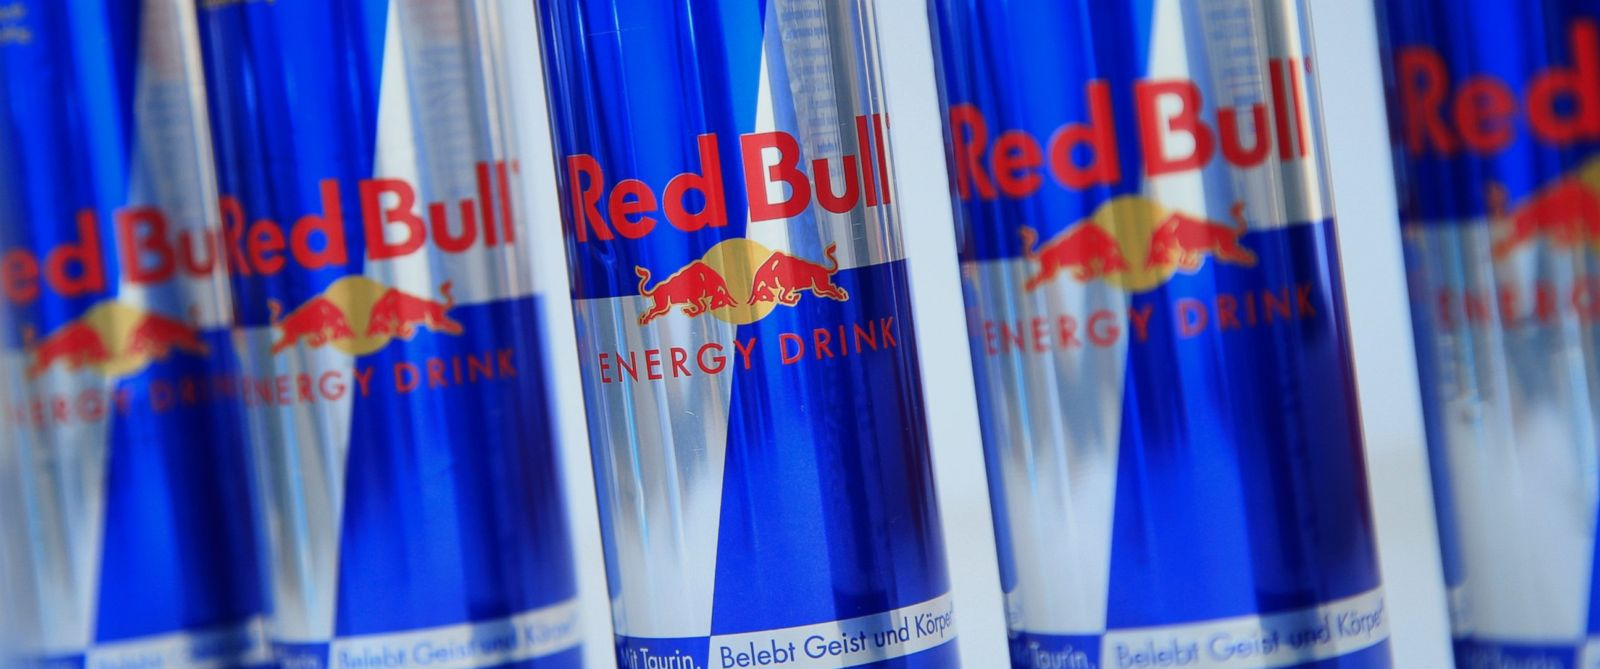 PHOTO: Cans of Red Bull are pictured in Vienna on March 16, 2013.